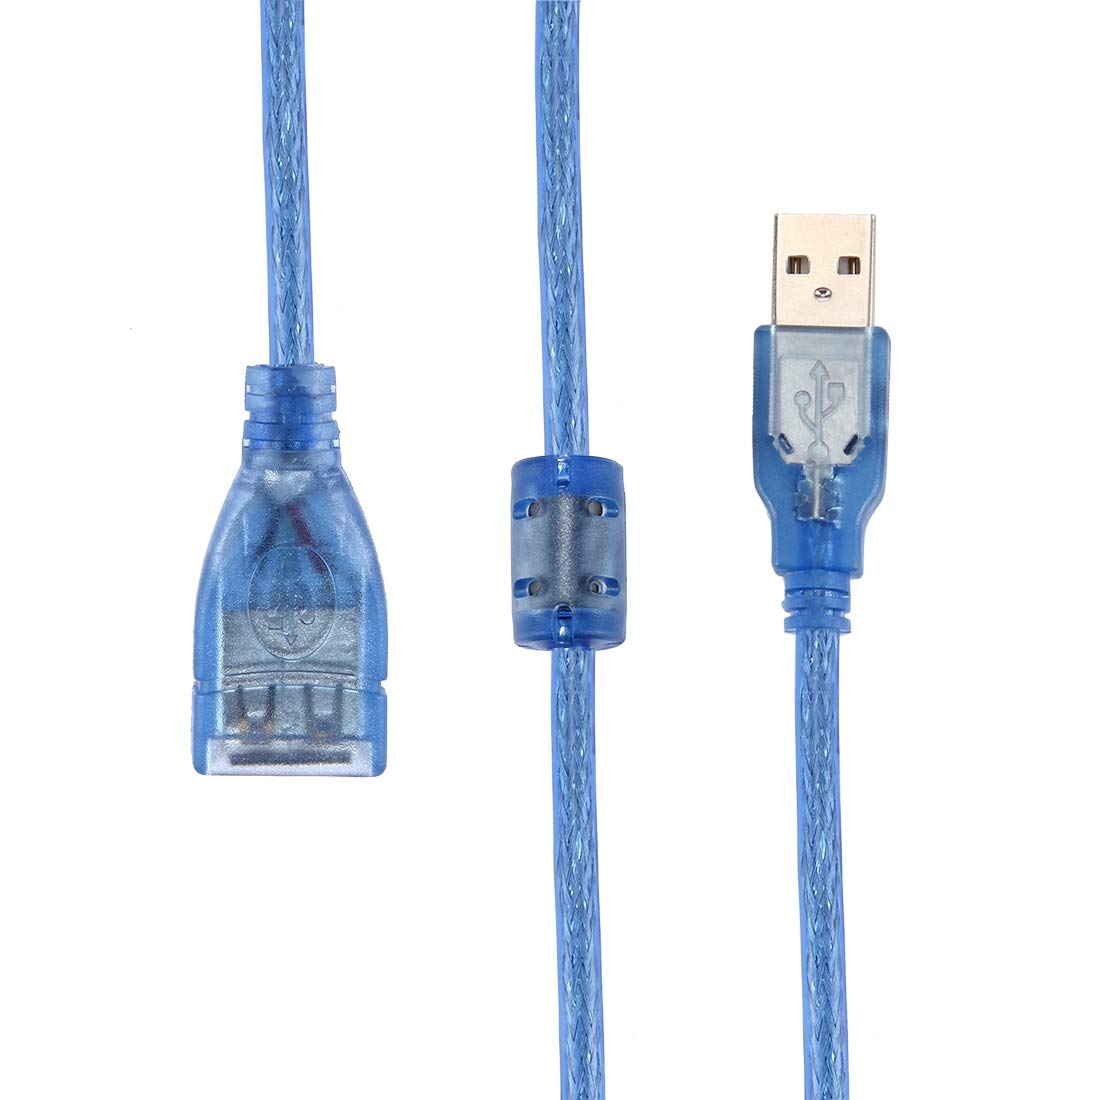 DUANDETAO High Speed Transmission USB 2.0 AM to AF Extension Cable 10m USB Accessories Length